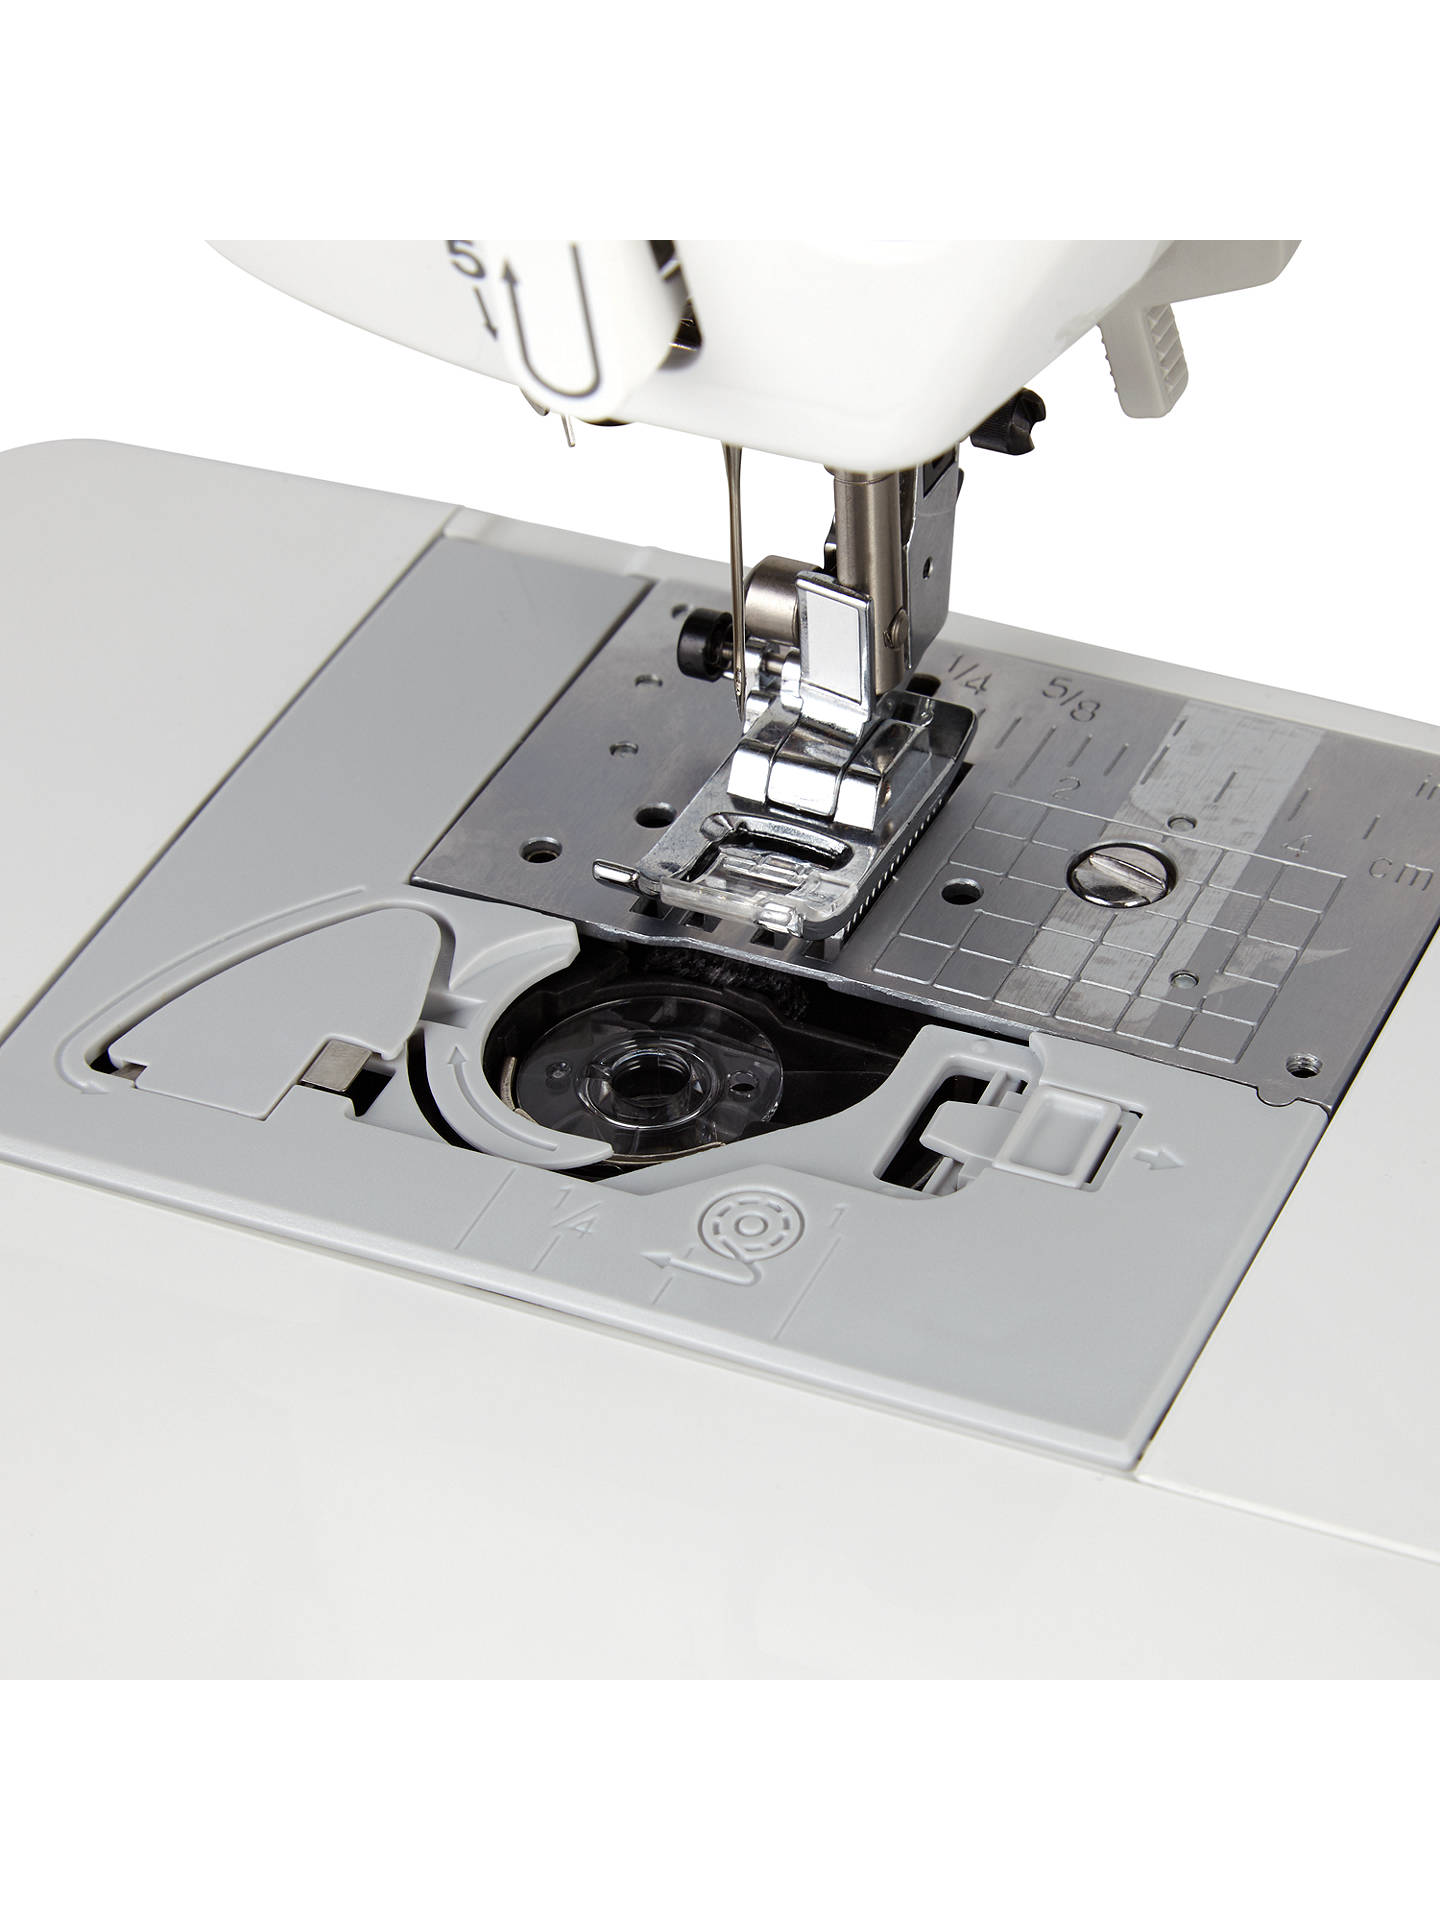 BuyBrother JK4000 Sewing Machine Online at johnlewis.com